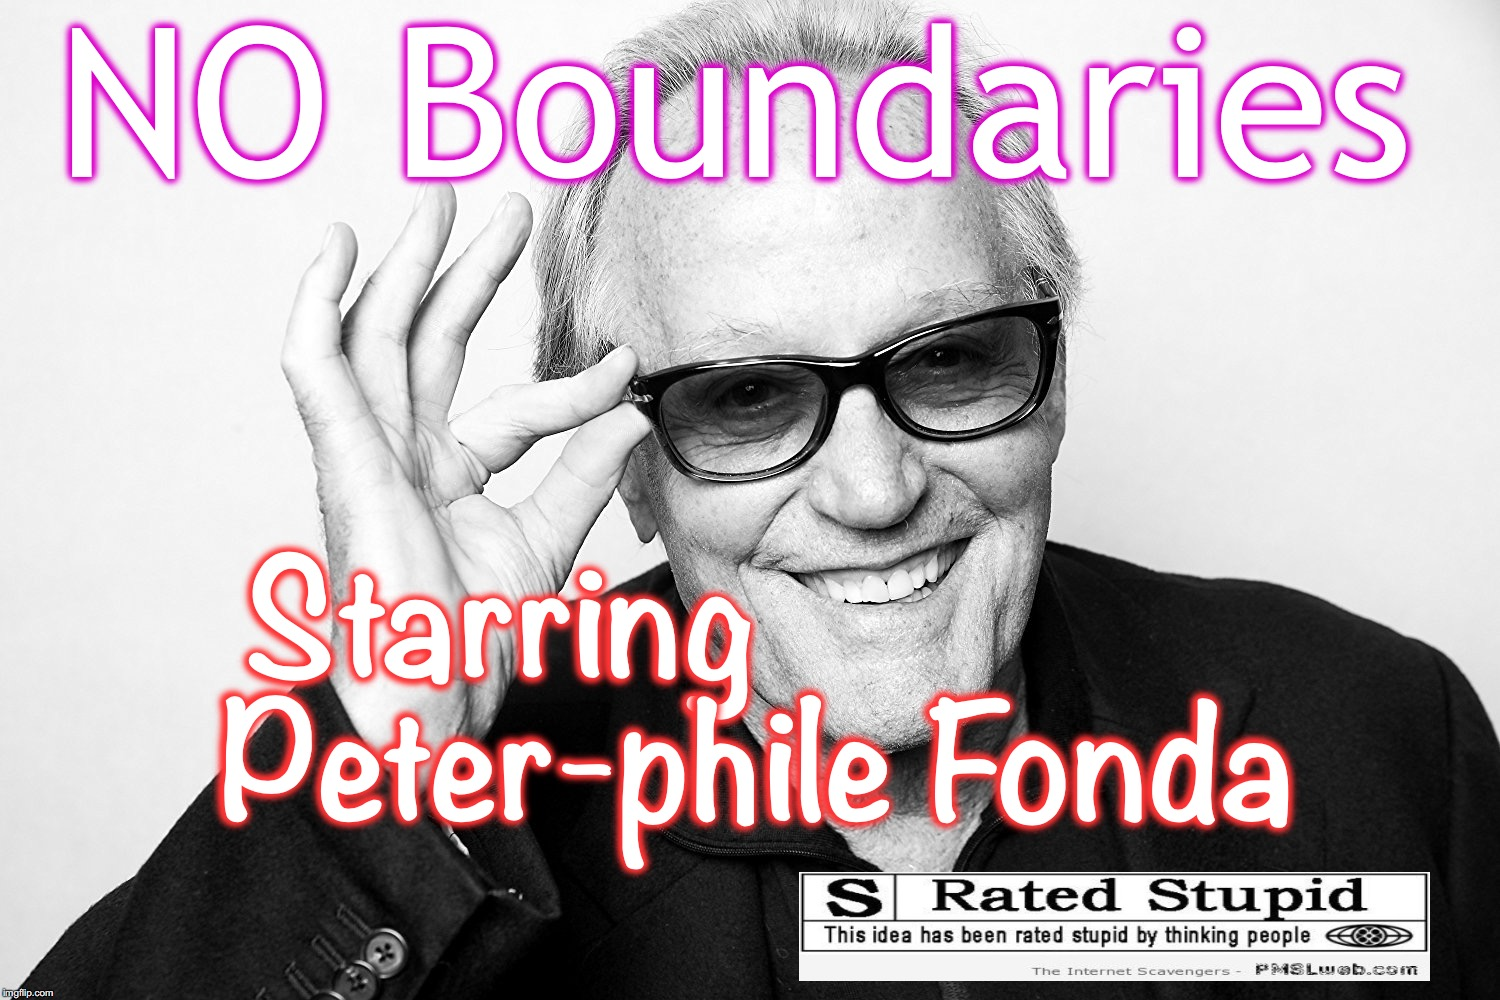 NO Boundaries Starring                 Peter-phile Fonda | image tagged in movies | made w/ Imgflip meme maker